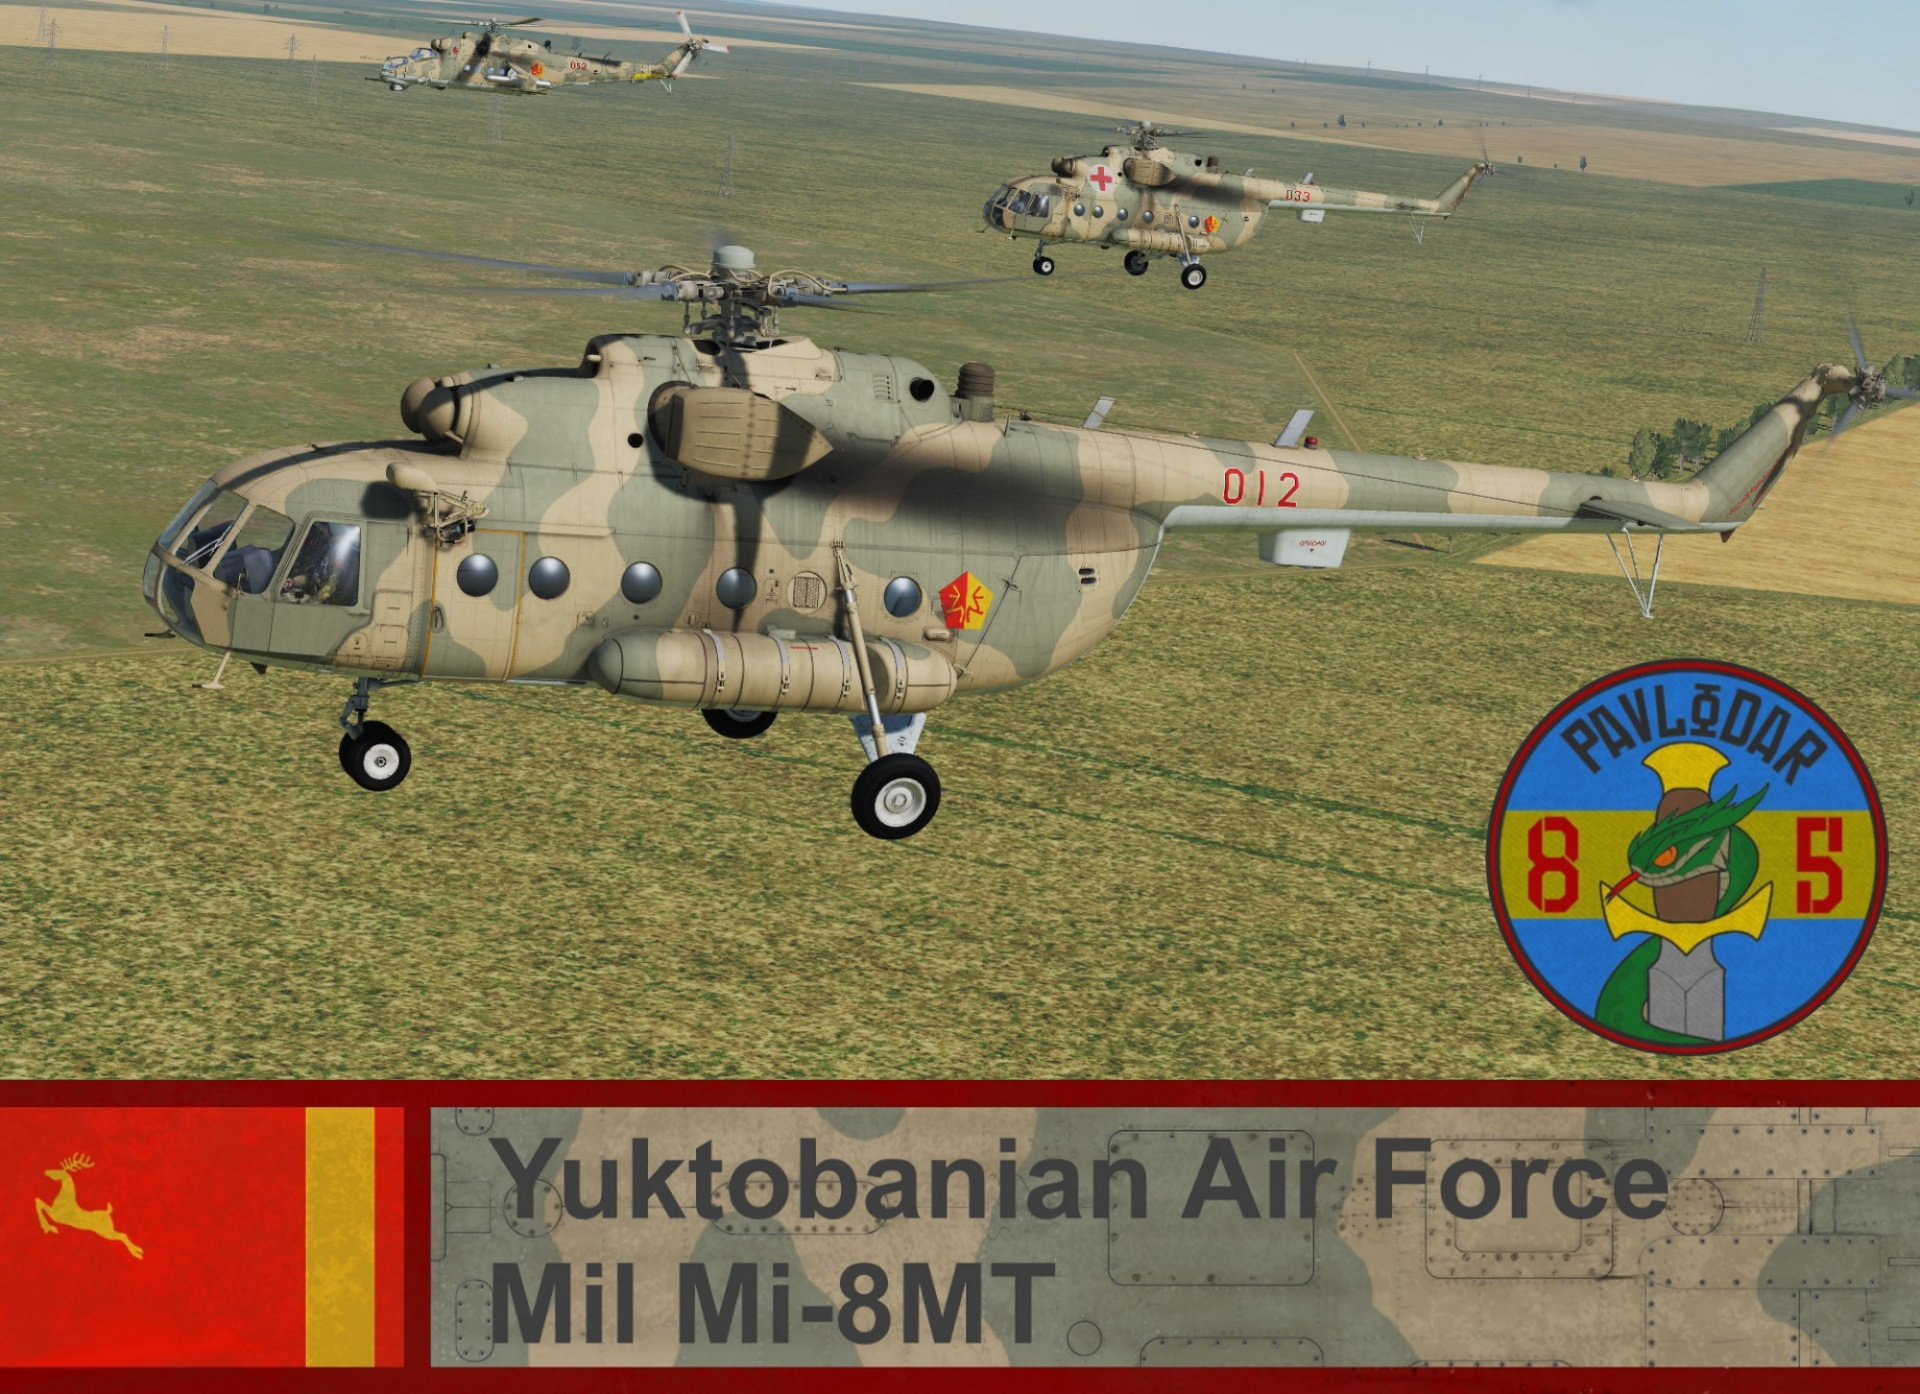 Yuktobanian Air Force Mi-8MT - Ace Combat 5 (85 IHS) *UPDATED*